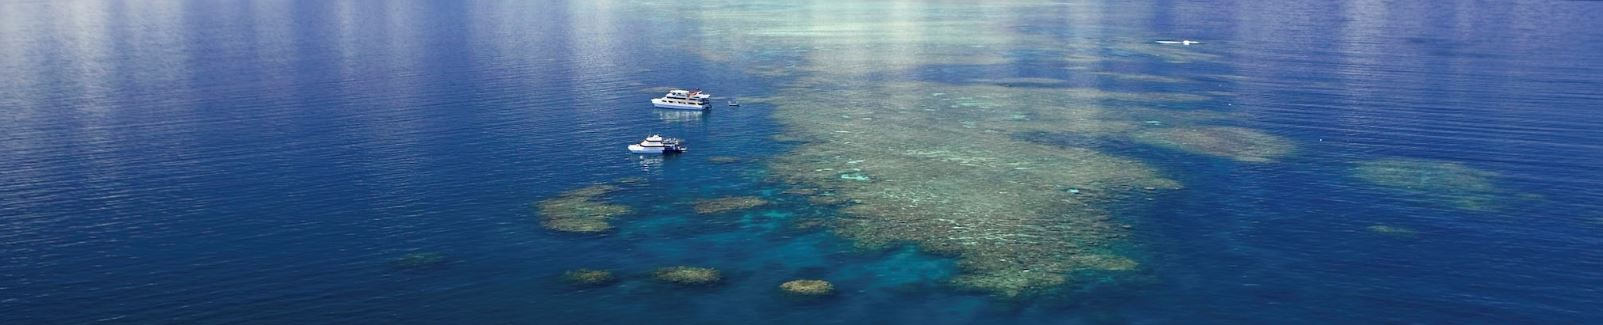 Cairns Reef: Great Barrier Reef